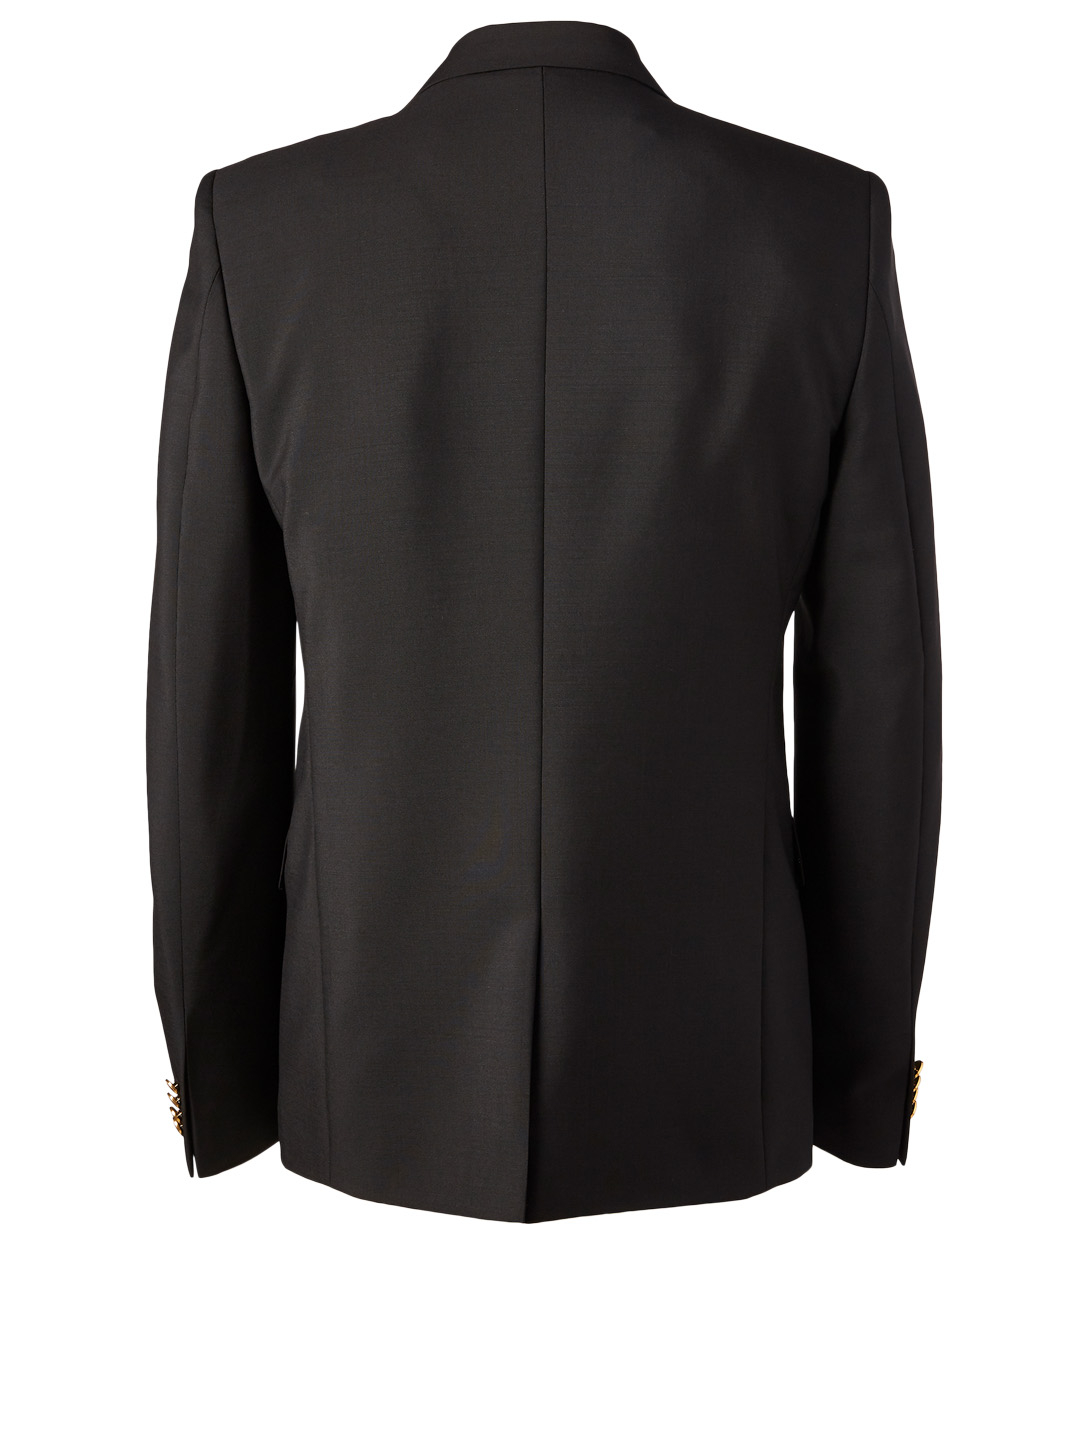 GIVENCHY Wool And Mohair Jacket Men's Black